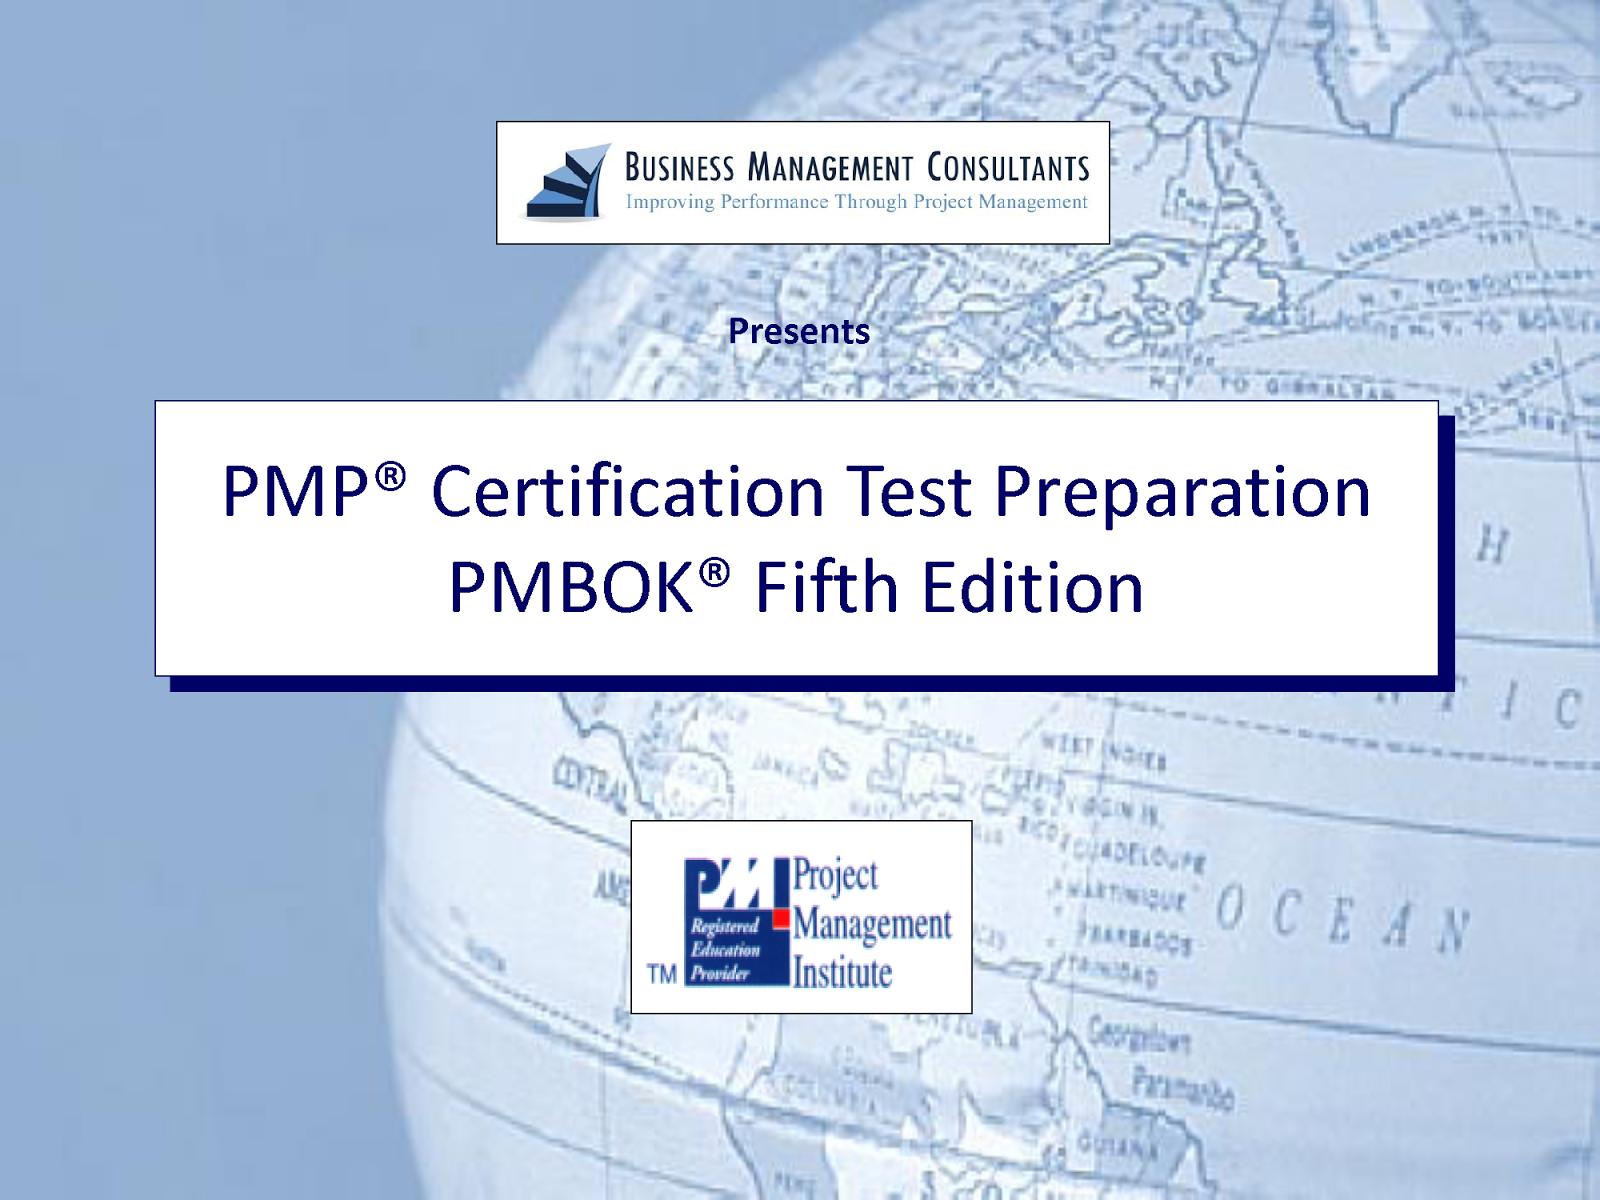 Pmp certification test preparation pmbok fifth edition as you would be aware most of the multi national companies prefer to hire pmp certified project managers so its always worth to get this certification 1betcityfo Gallery